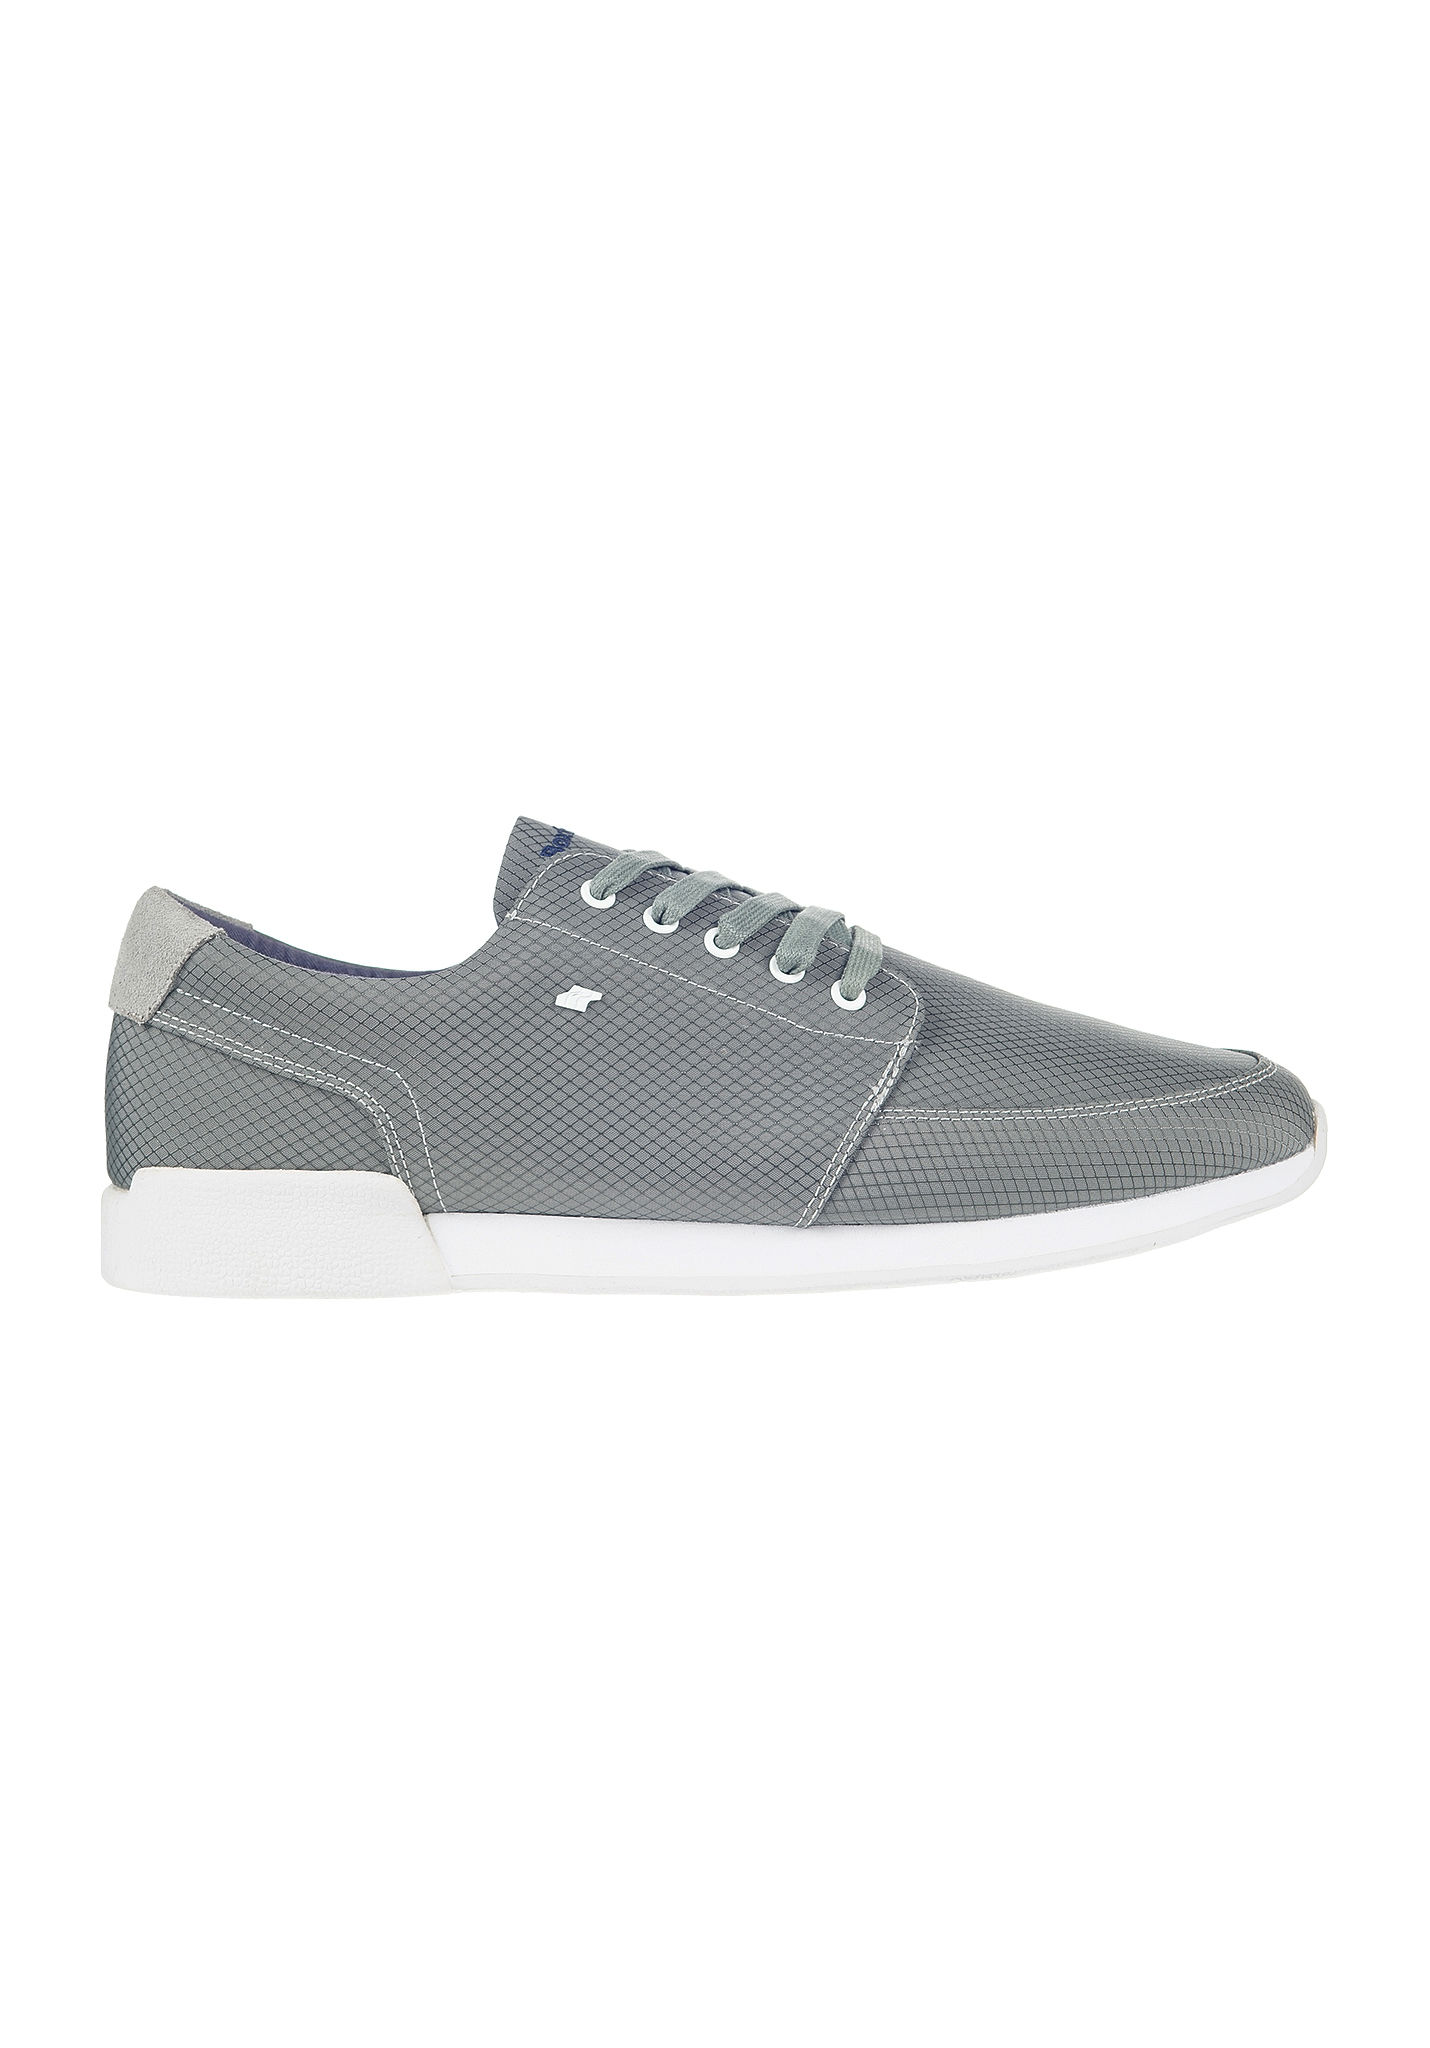 1a67f60190951 BOXFRESH Struct INC Rip - Sneakers for Men - Grey - Planet Sports